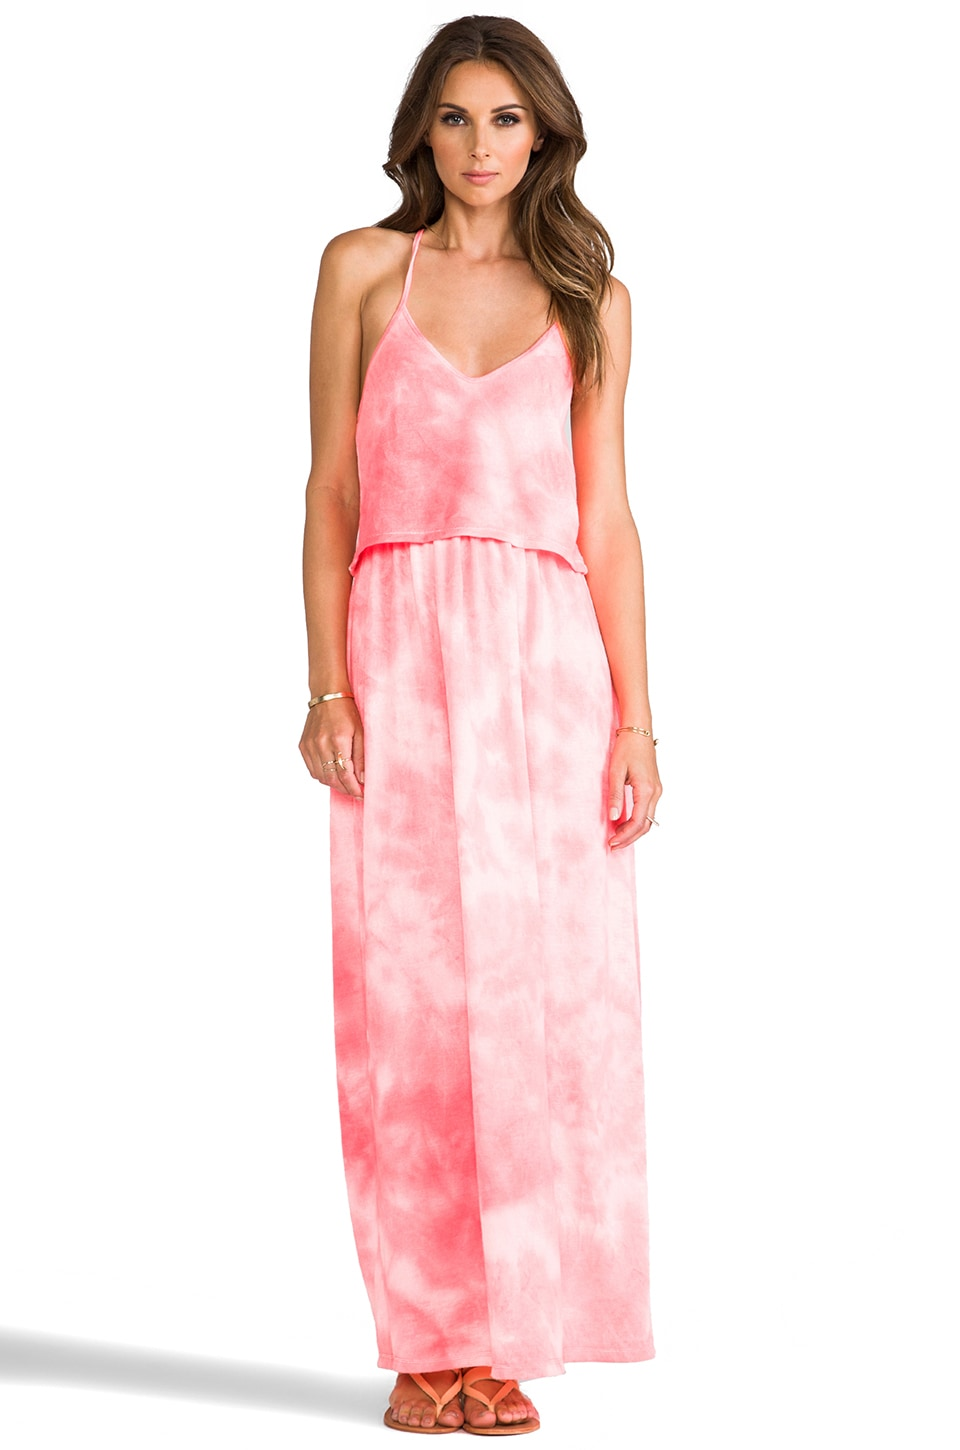 Dolce Vita Marian Dress in Pink